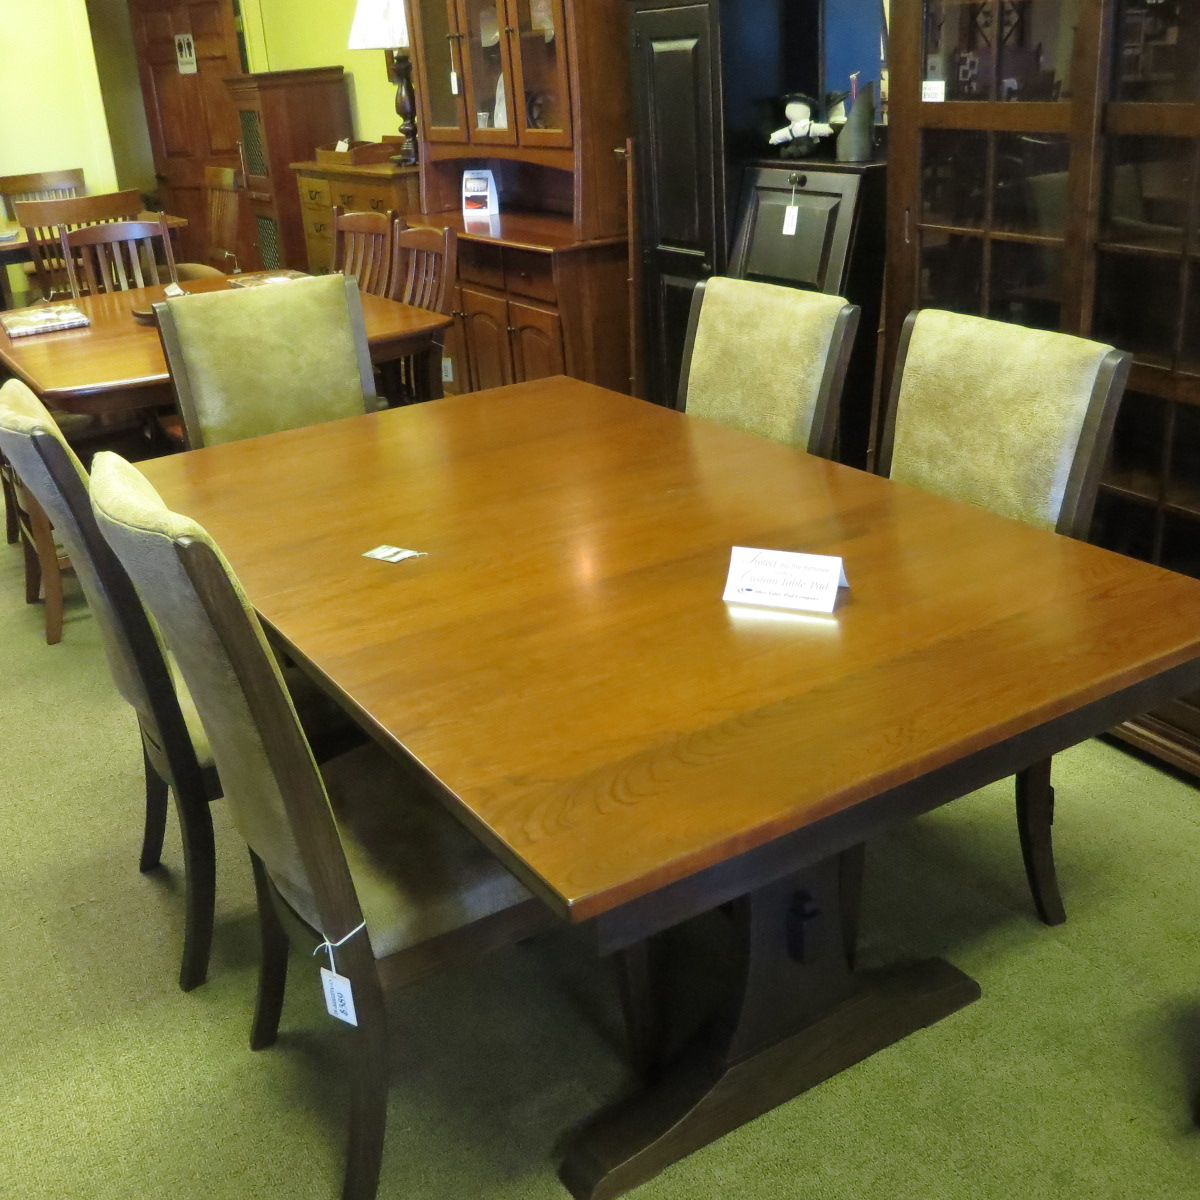 Trestle Base 42 X 72 Table With 2 Leaves And 6 Chairs IMG 09441